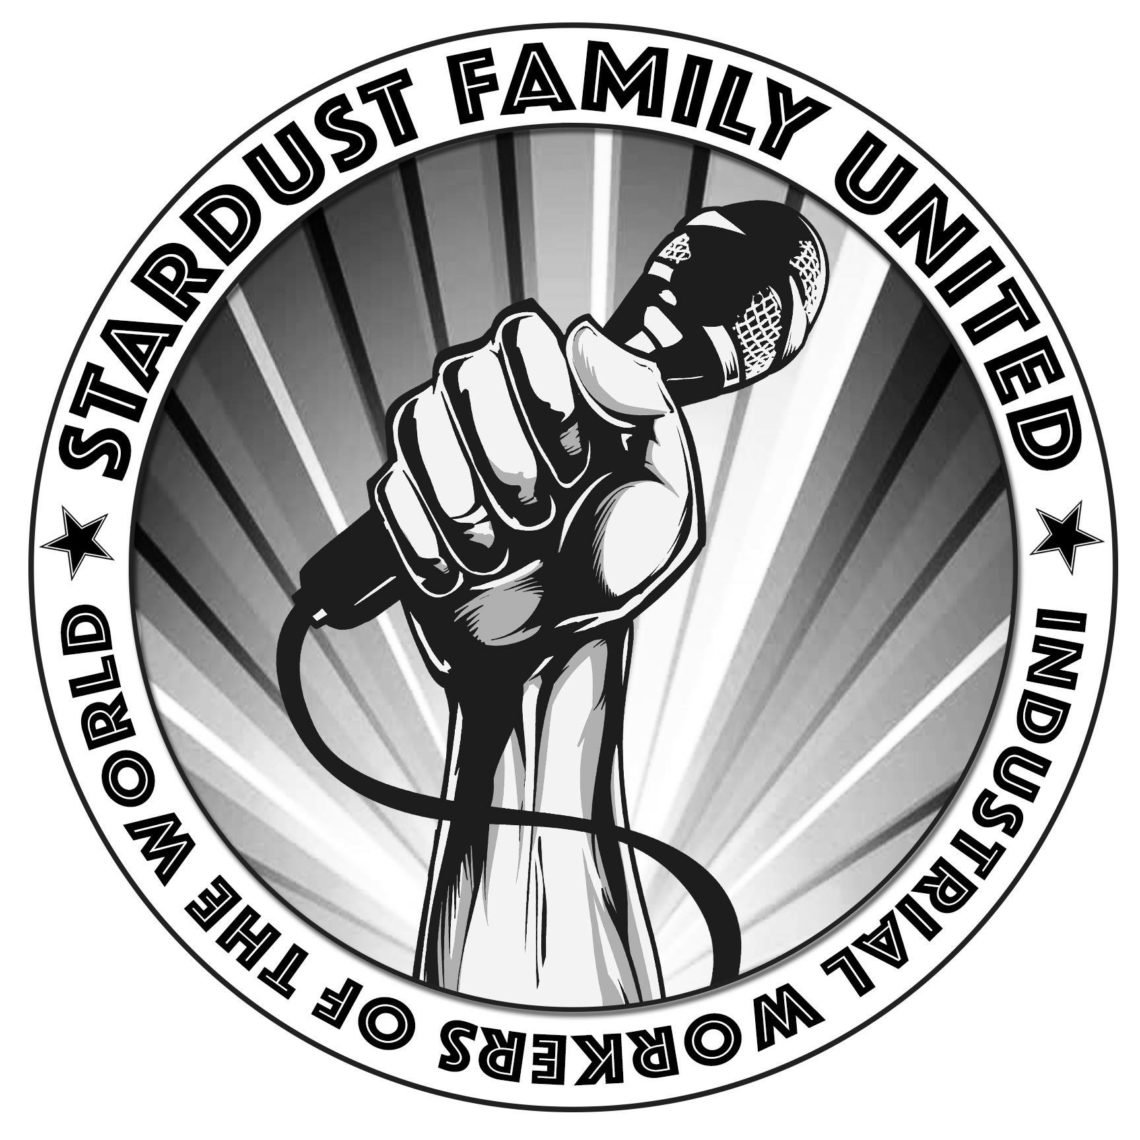 Stardust Family United logo